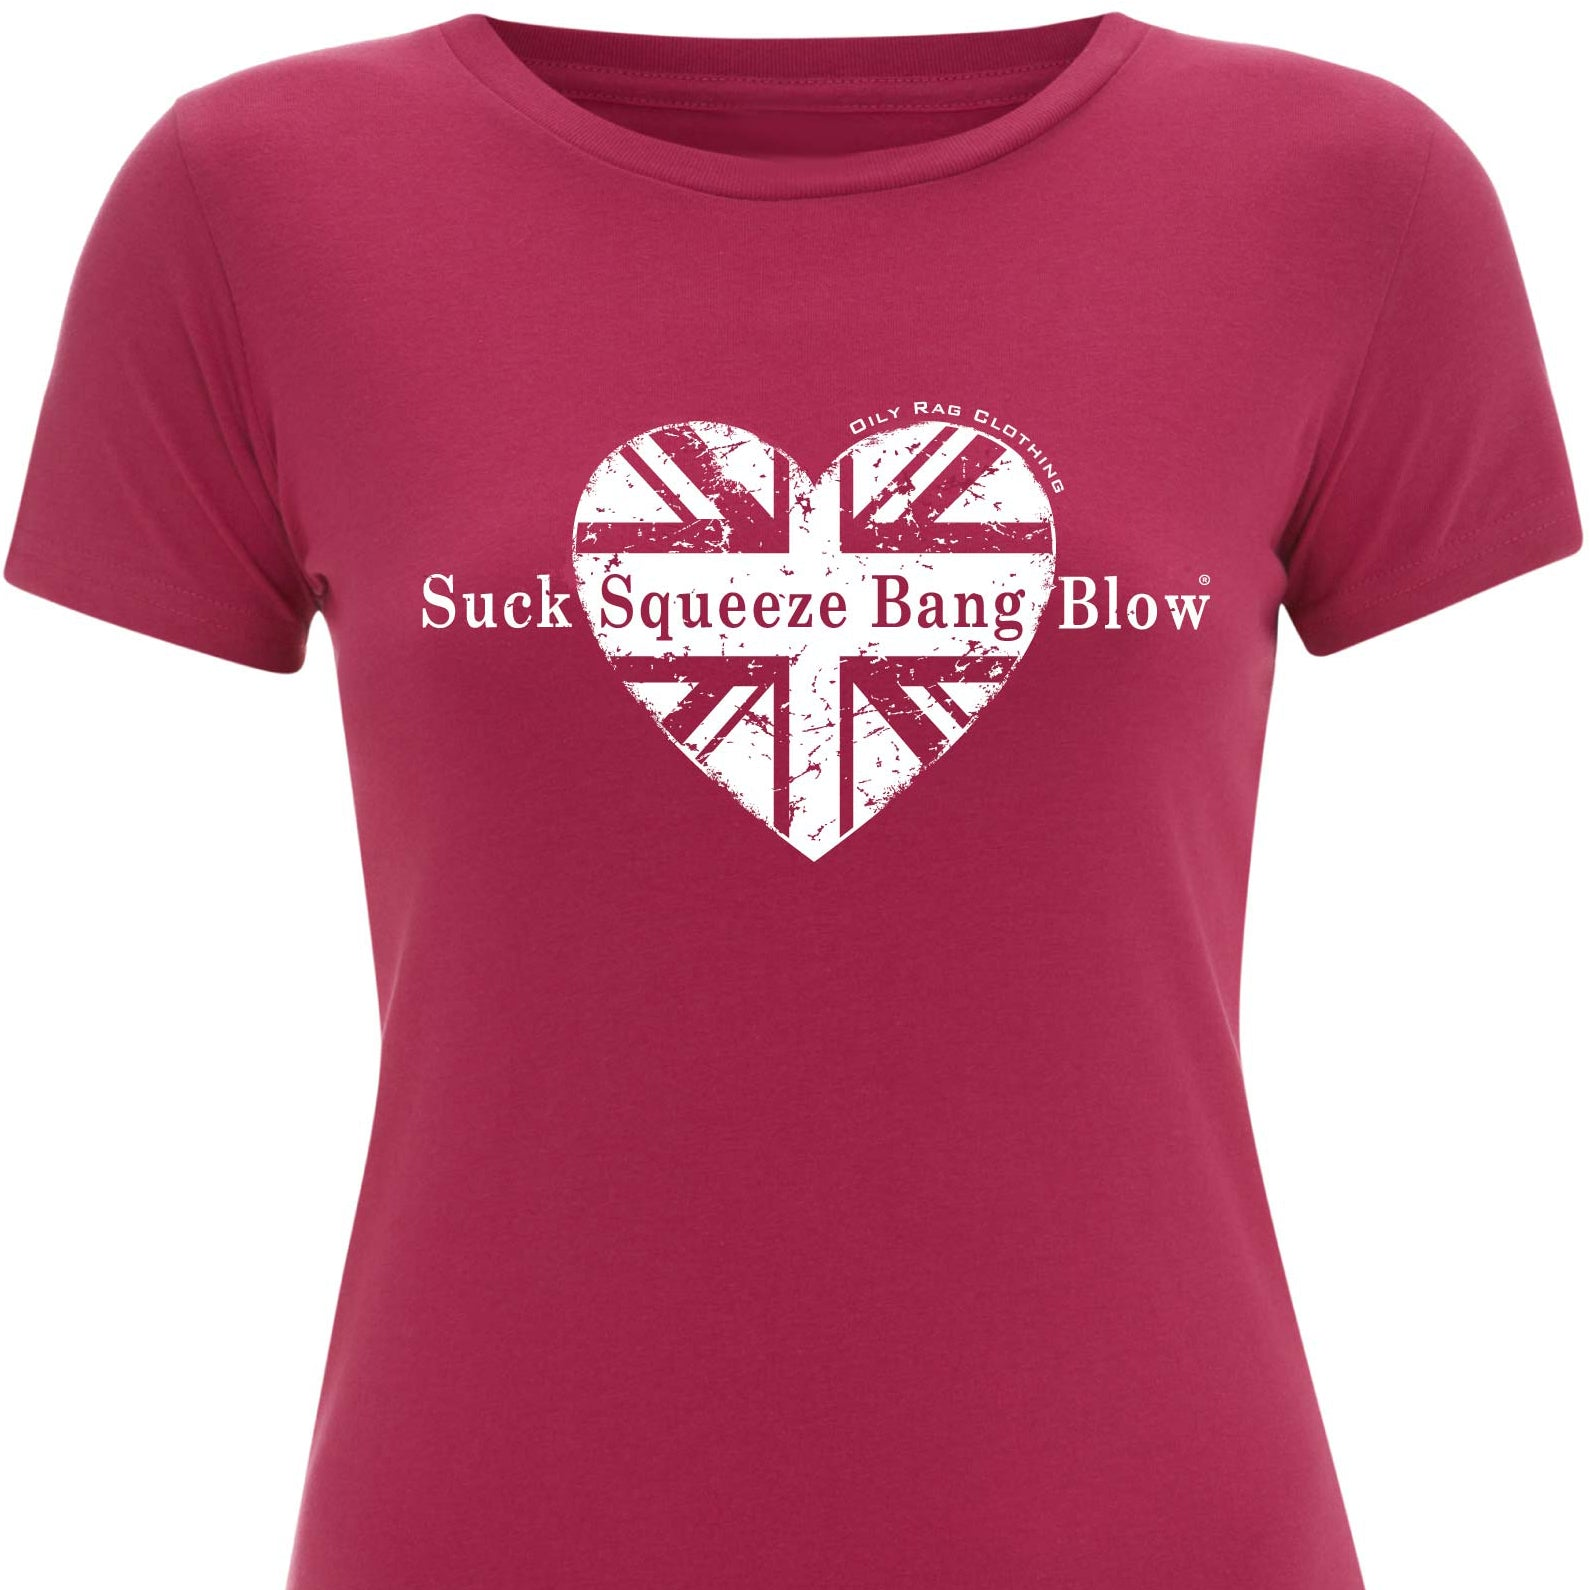 Oily Rag Pink Heart Suck Squeeze Bang Blow retro motorcycle ladies t'shirt